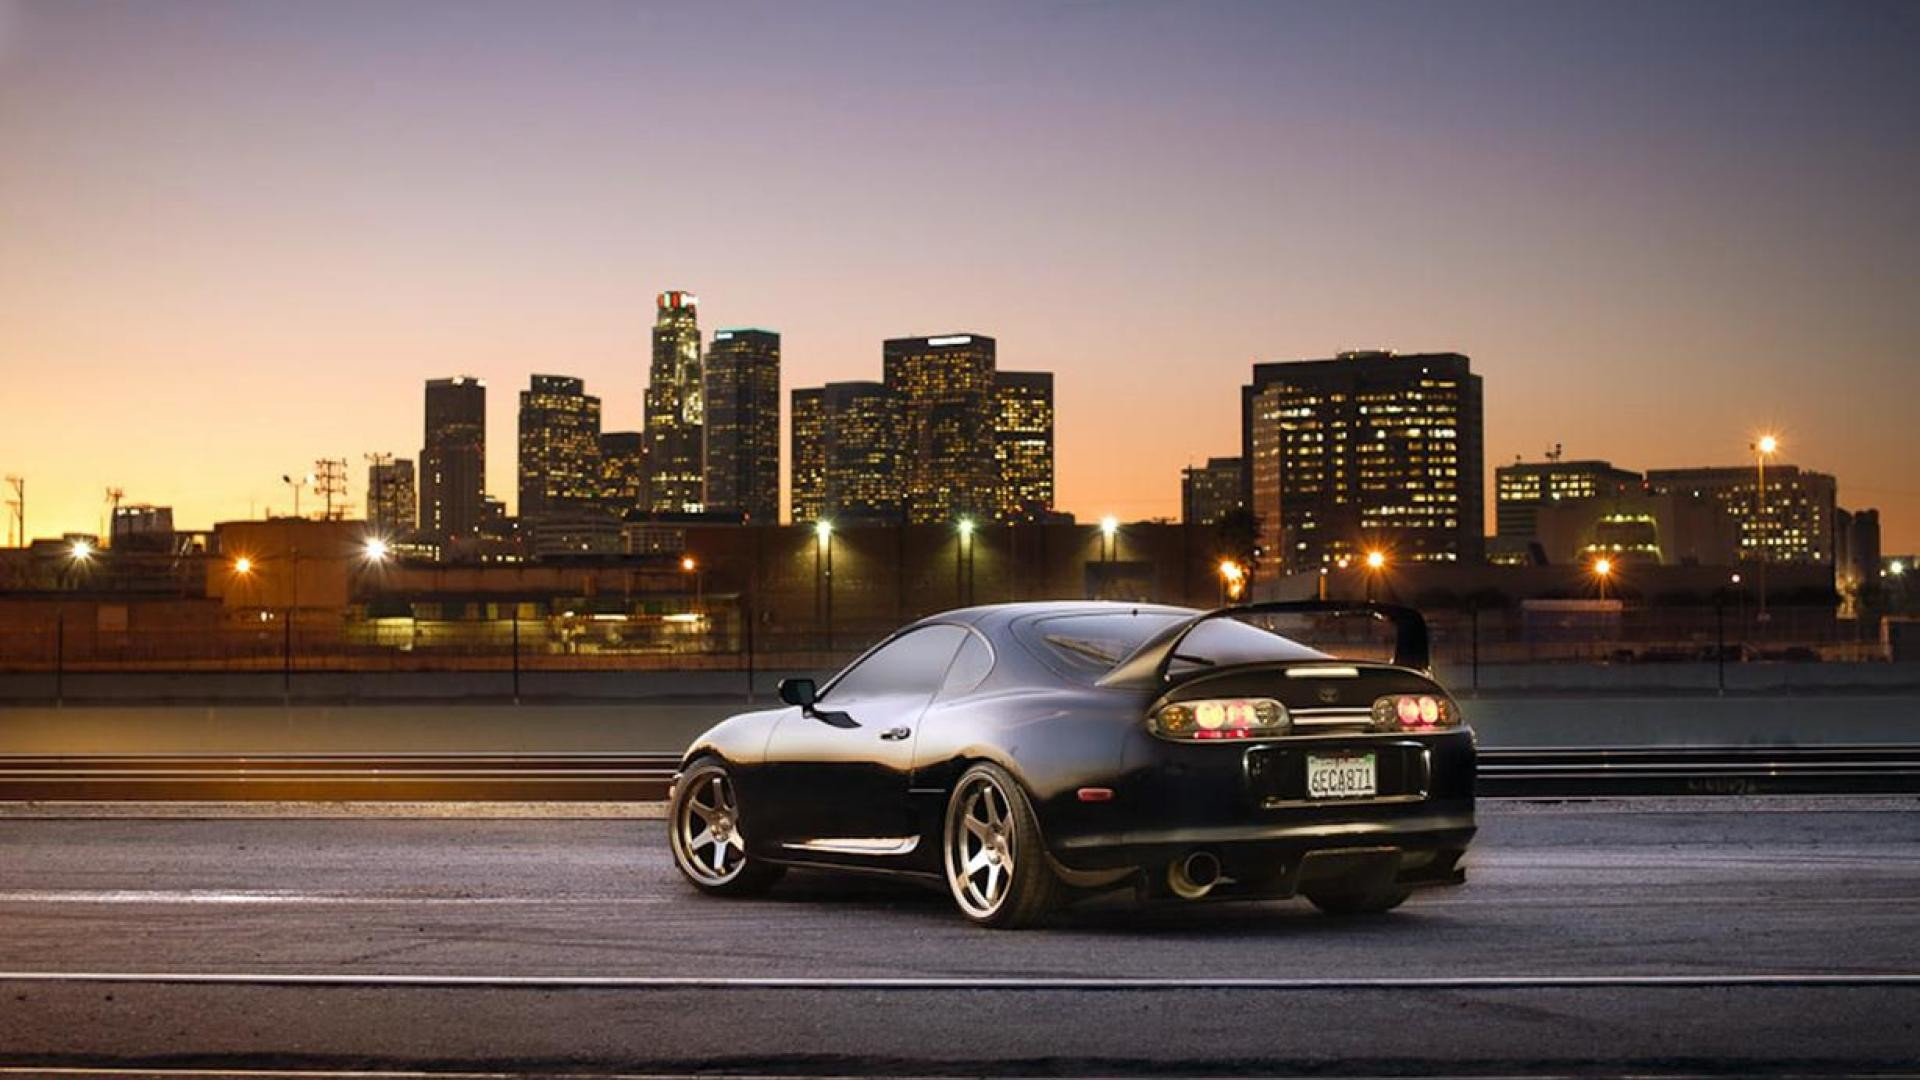 64 Toyota Supra Wallpapers On Wallpaperplay 3084389 Hd Wallpaper Backgrounds Download